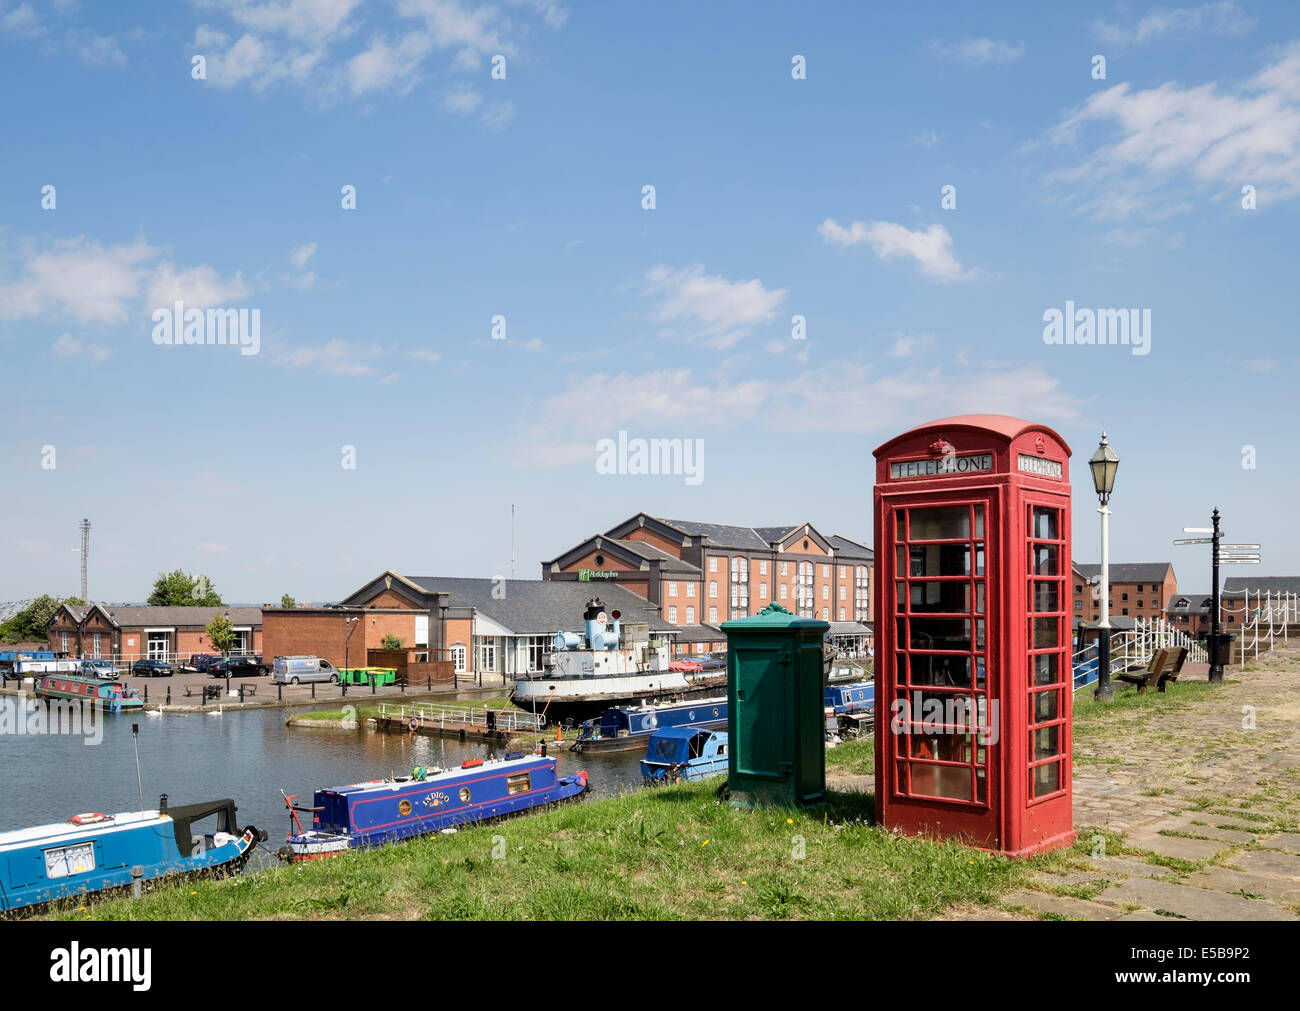 Red K6 telephone box by Shropshire Union Canal at National Waterways Museum Ellesmere Port Wirral Cheshire England - Stock Image